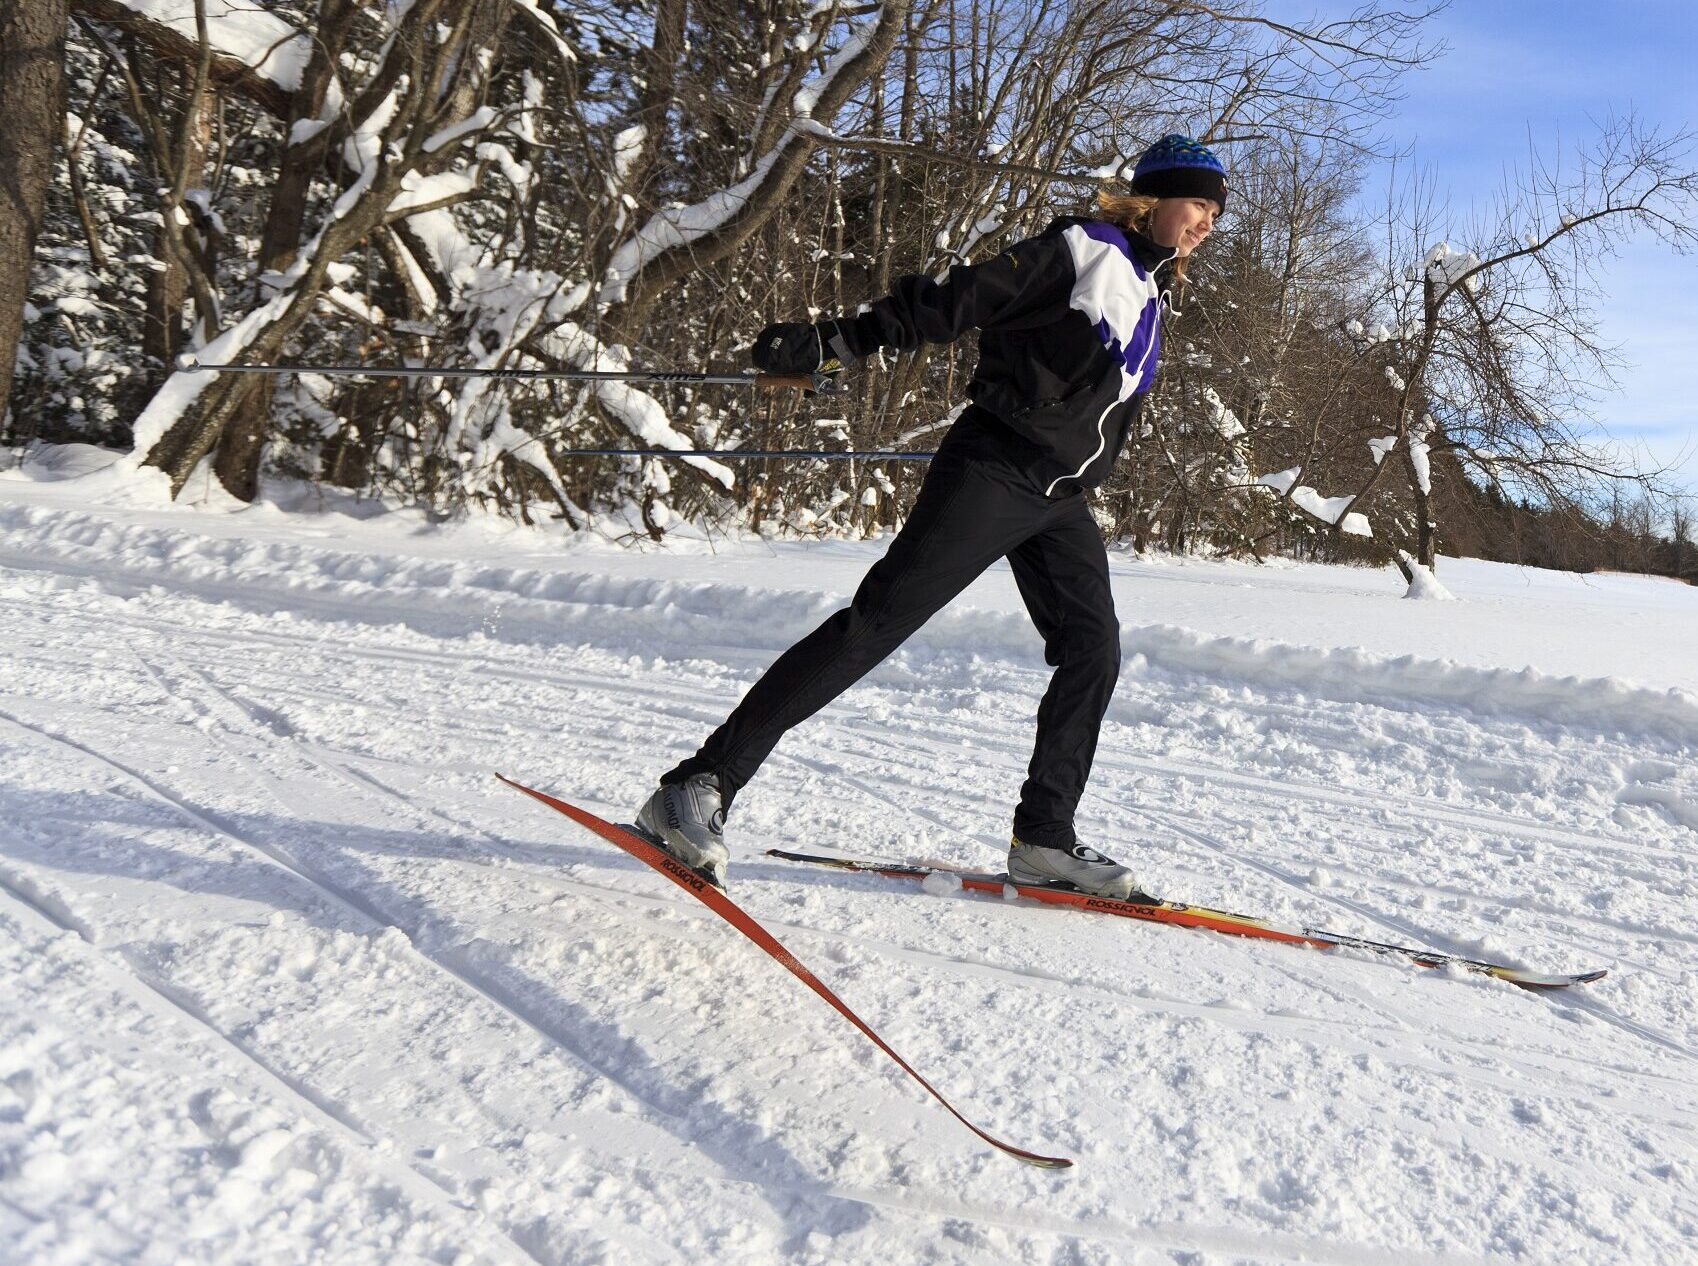 A woman cross-country skiing at the Notchview